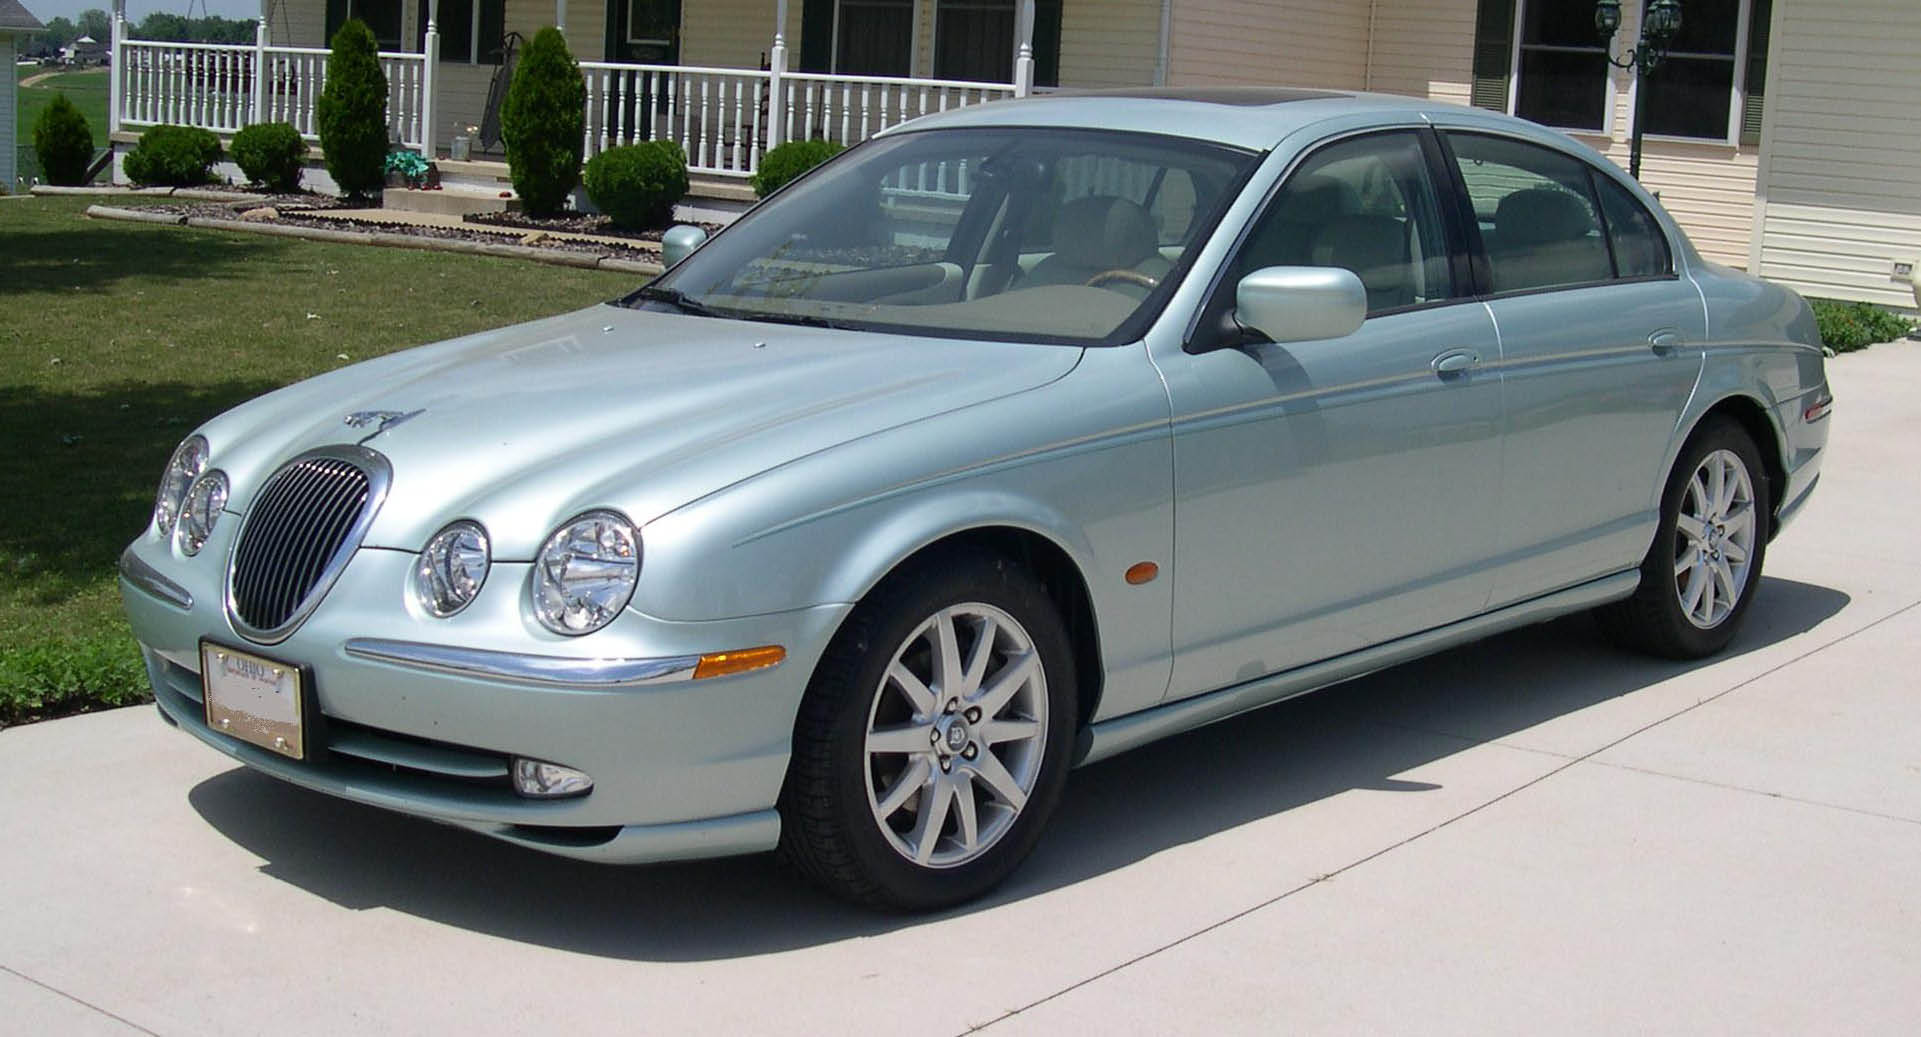 Elegant File:2001 Jaguar S Type.JPG